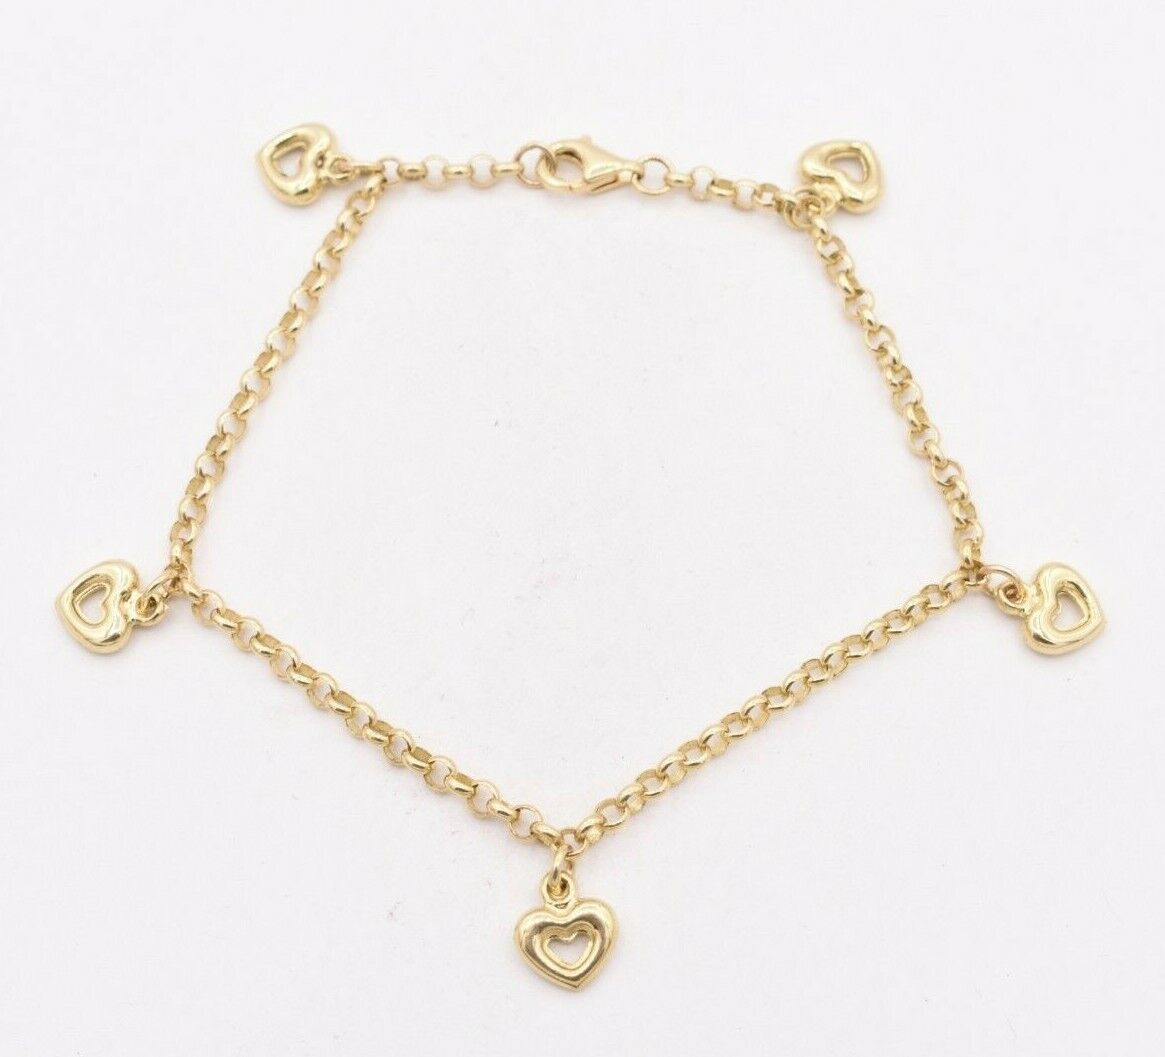 10k Yellow Gold Tennis Charm With Lobster Claw Clasp Charms for Bracelets and Necklaces